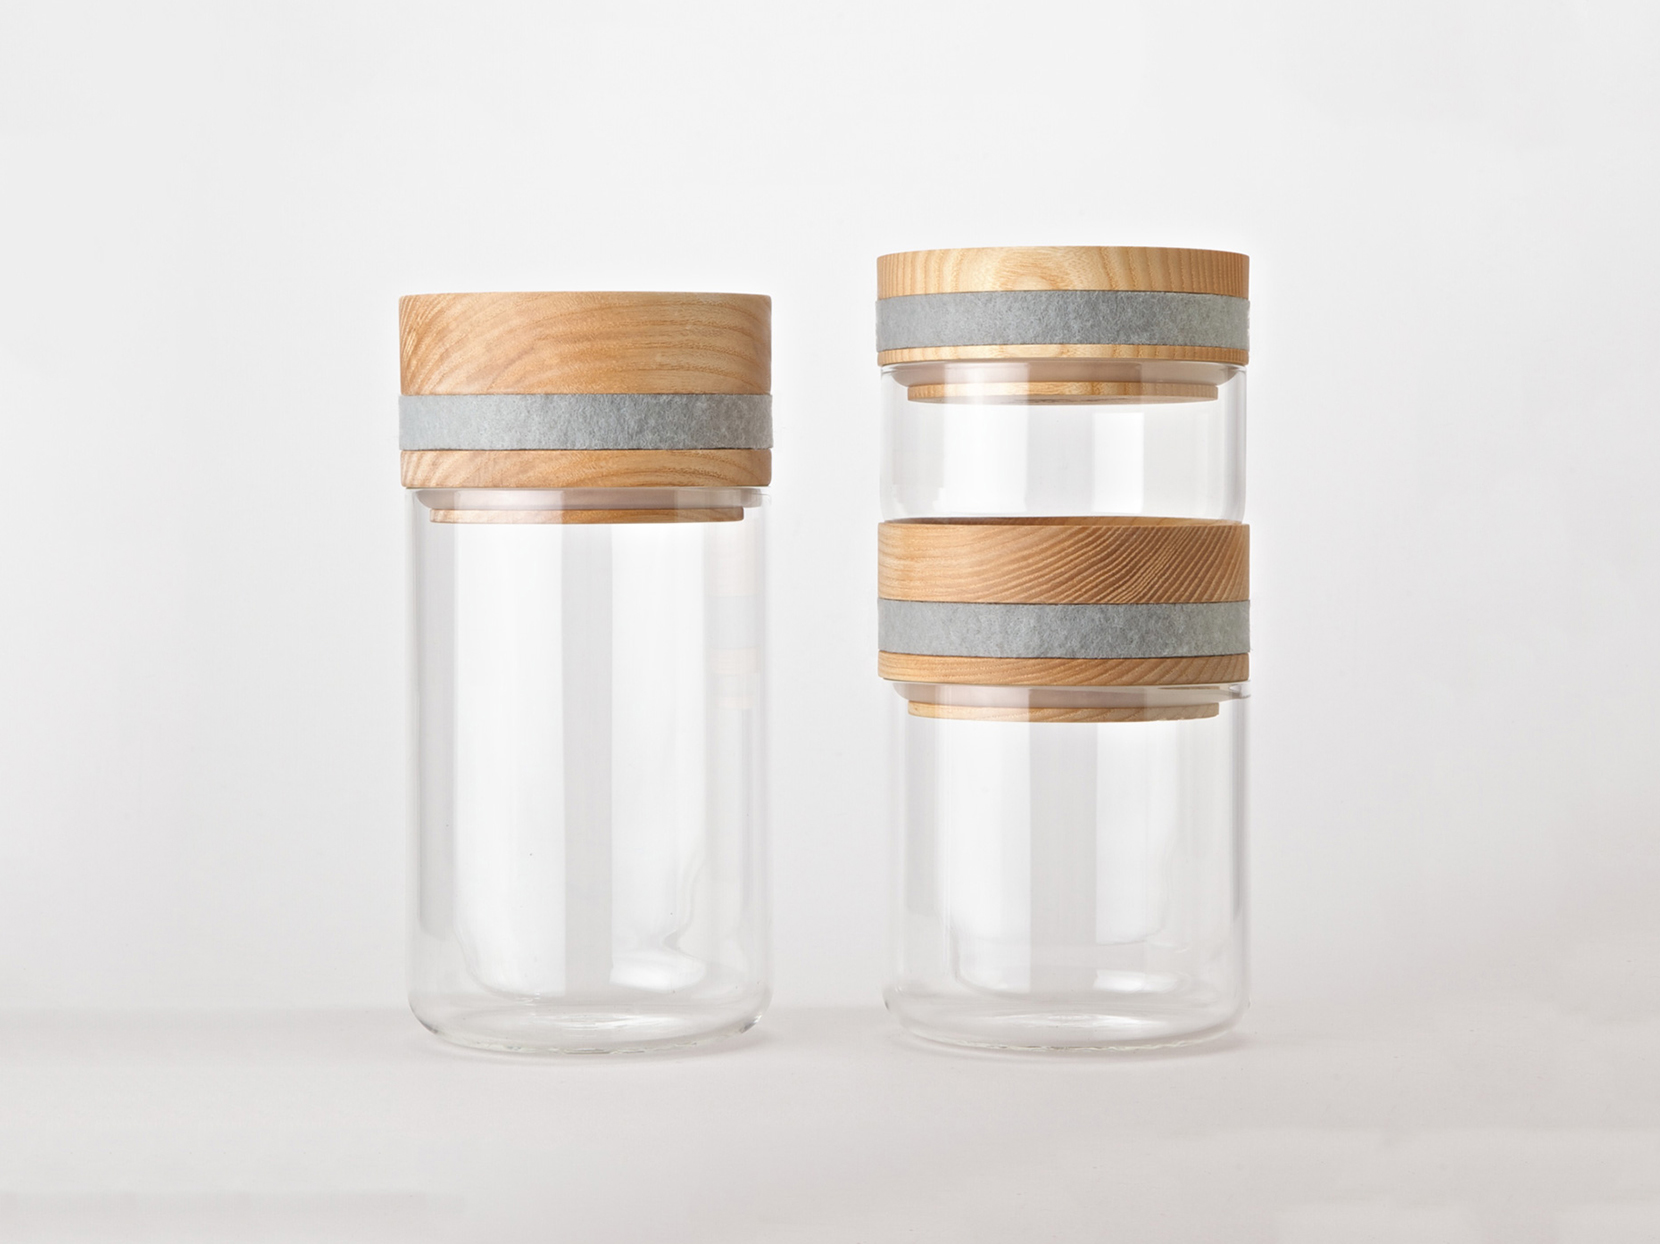 Obtineo stackable storage jars